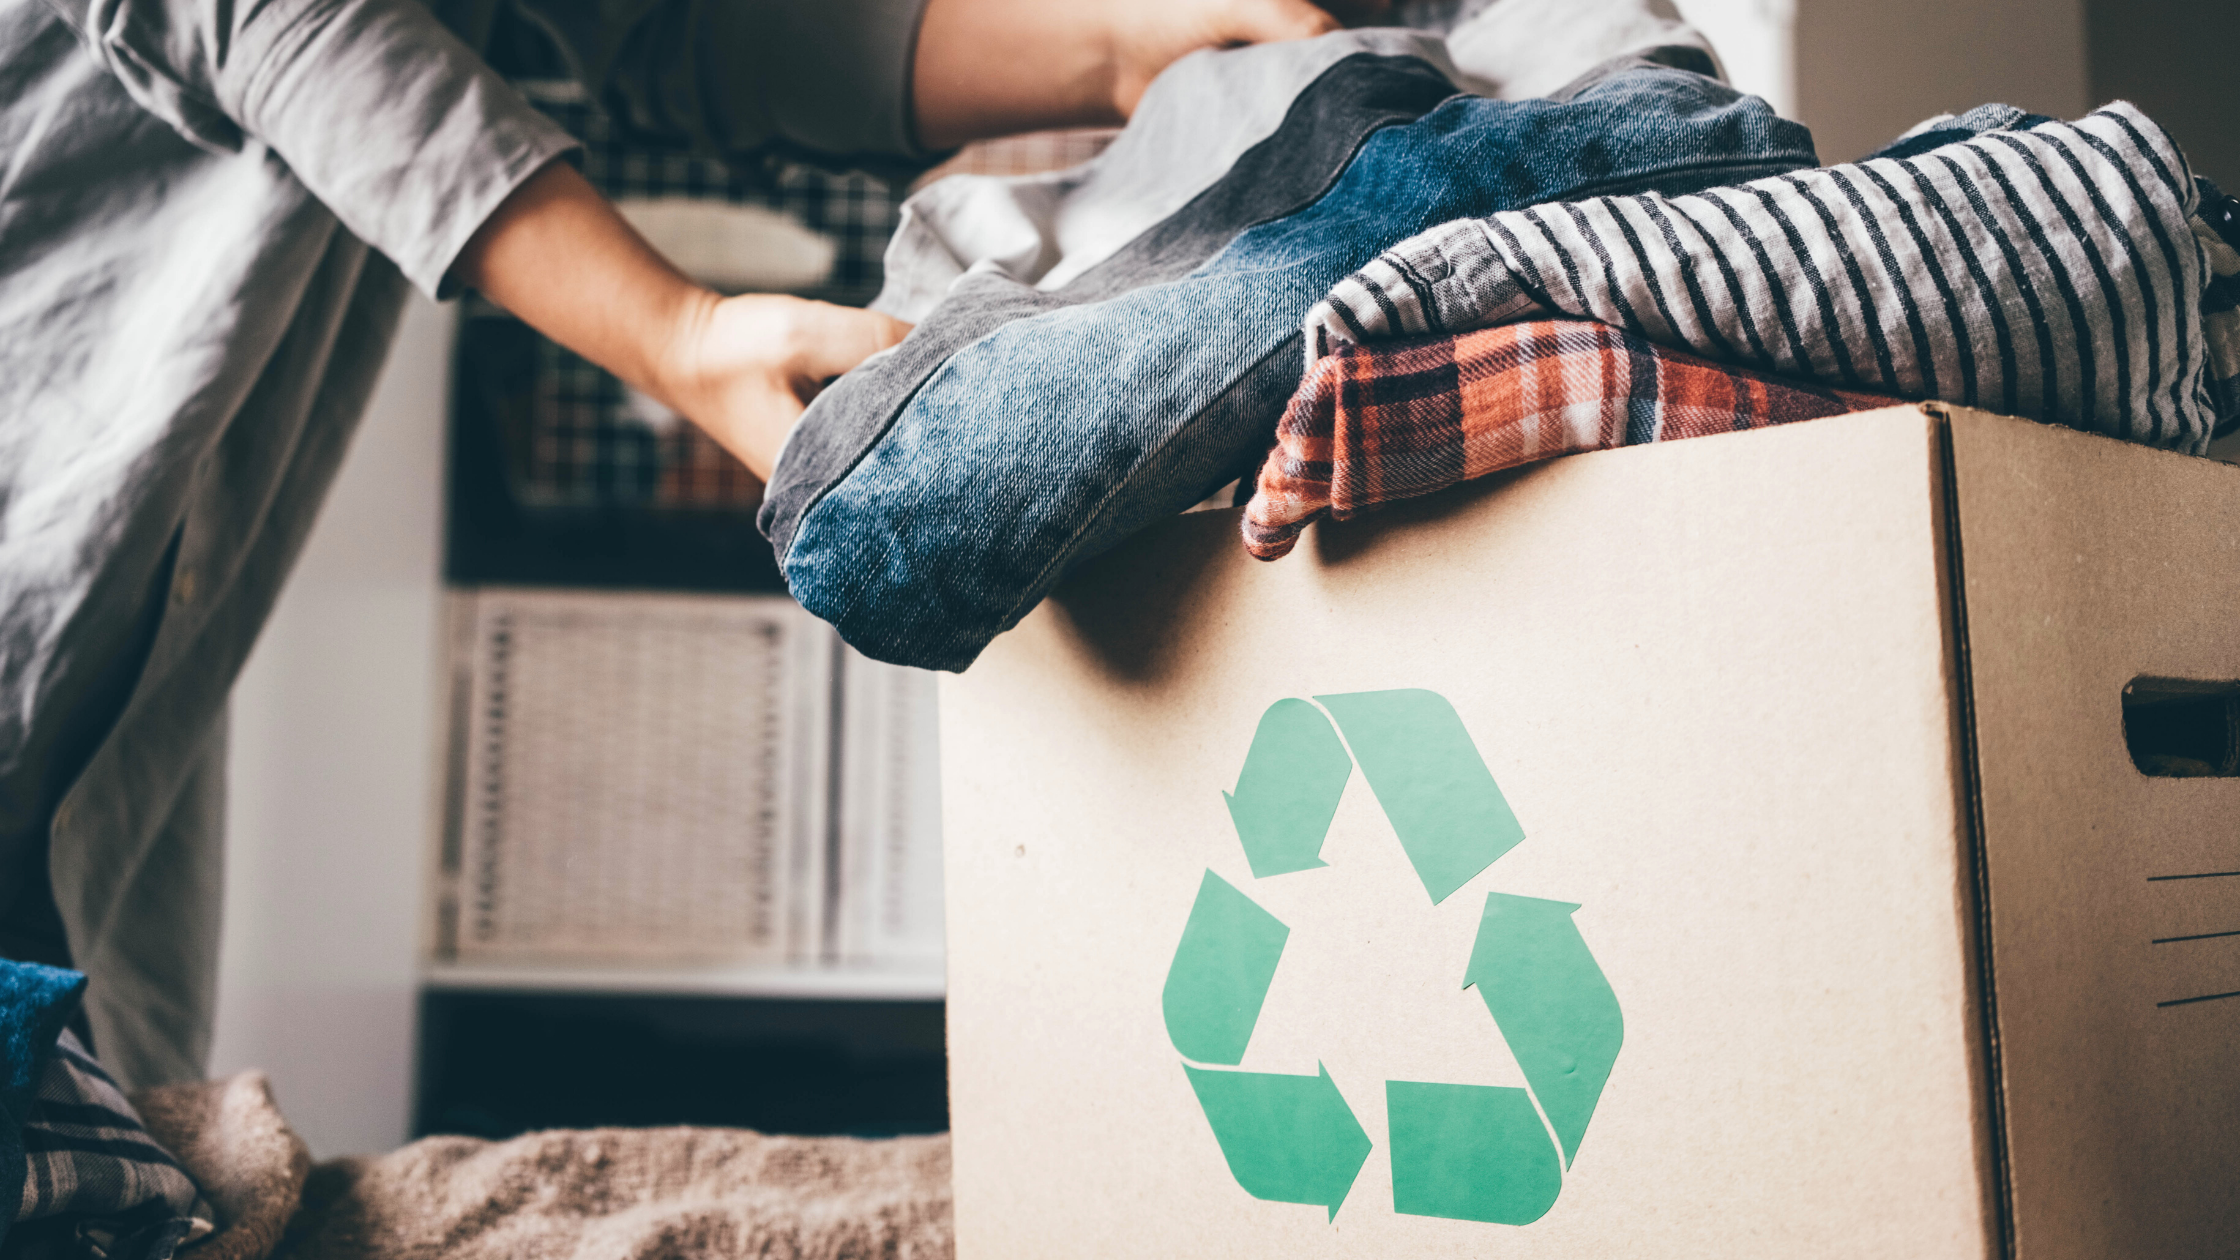 Recycled Clothing: Top 5 Clothing Brands That Use Recycled Materials